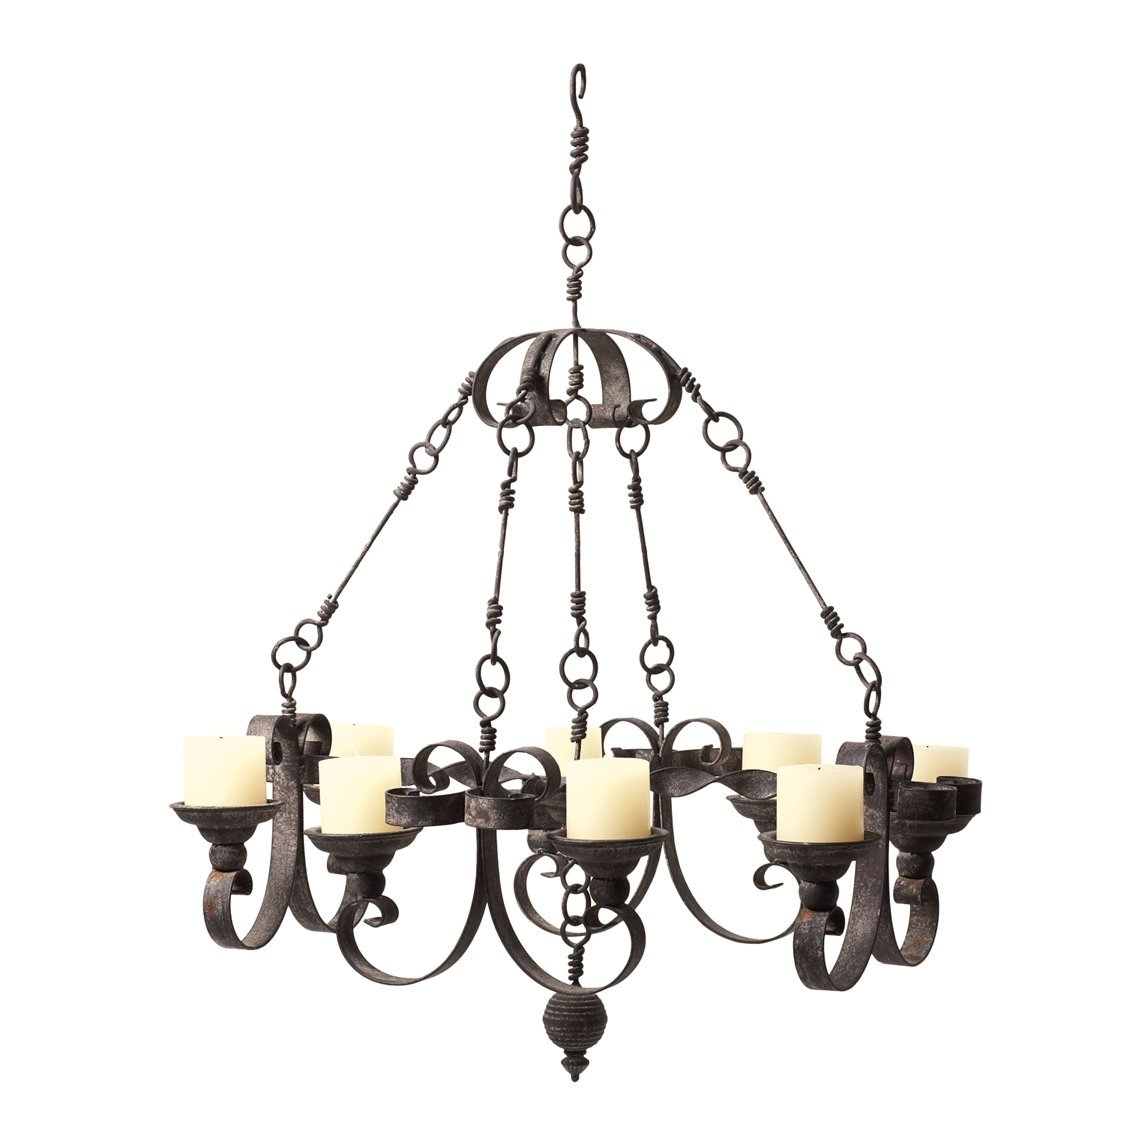 Beautiful Real Candle Chandelier Homesfeed For Candle Chandelier (Image 1 of 15)